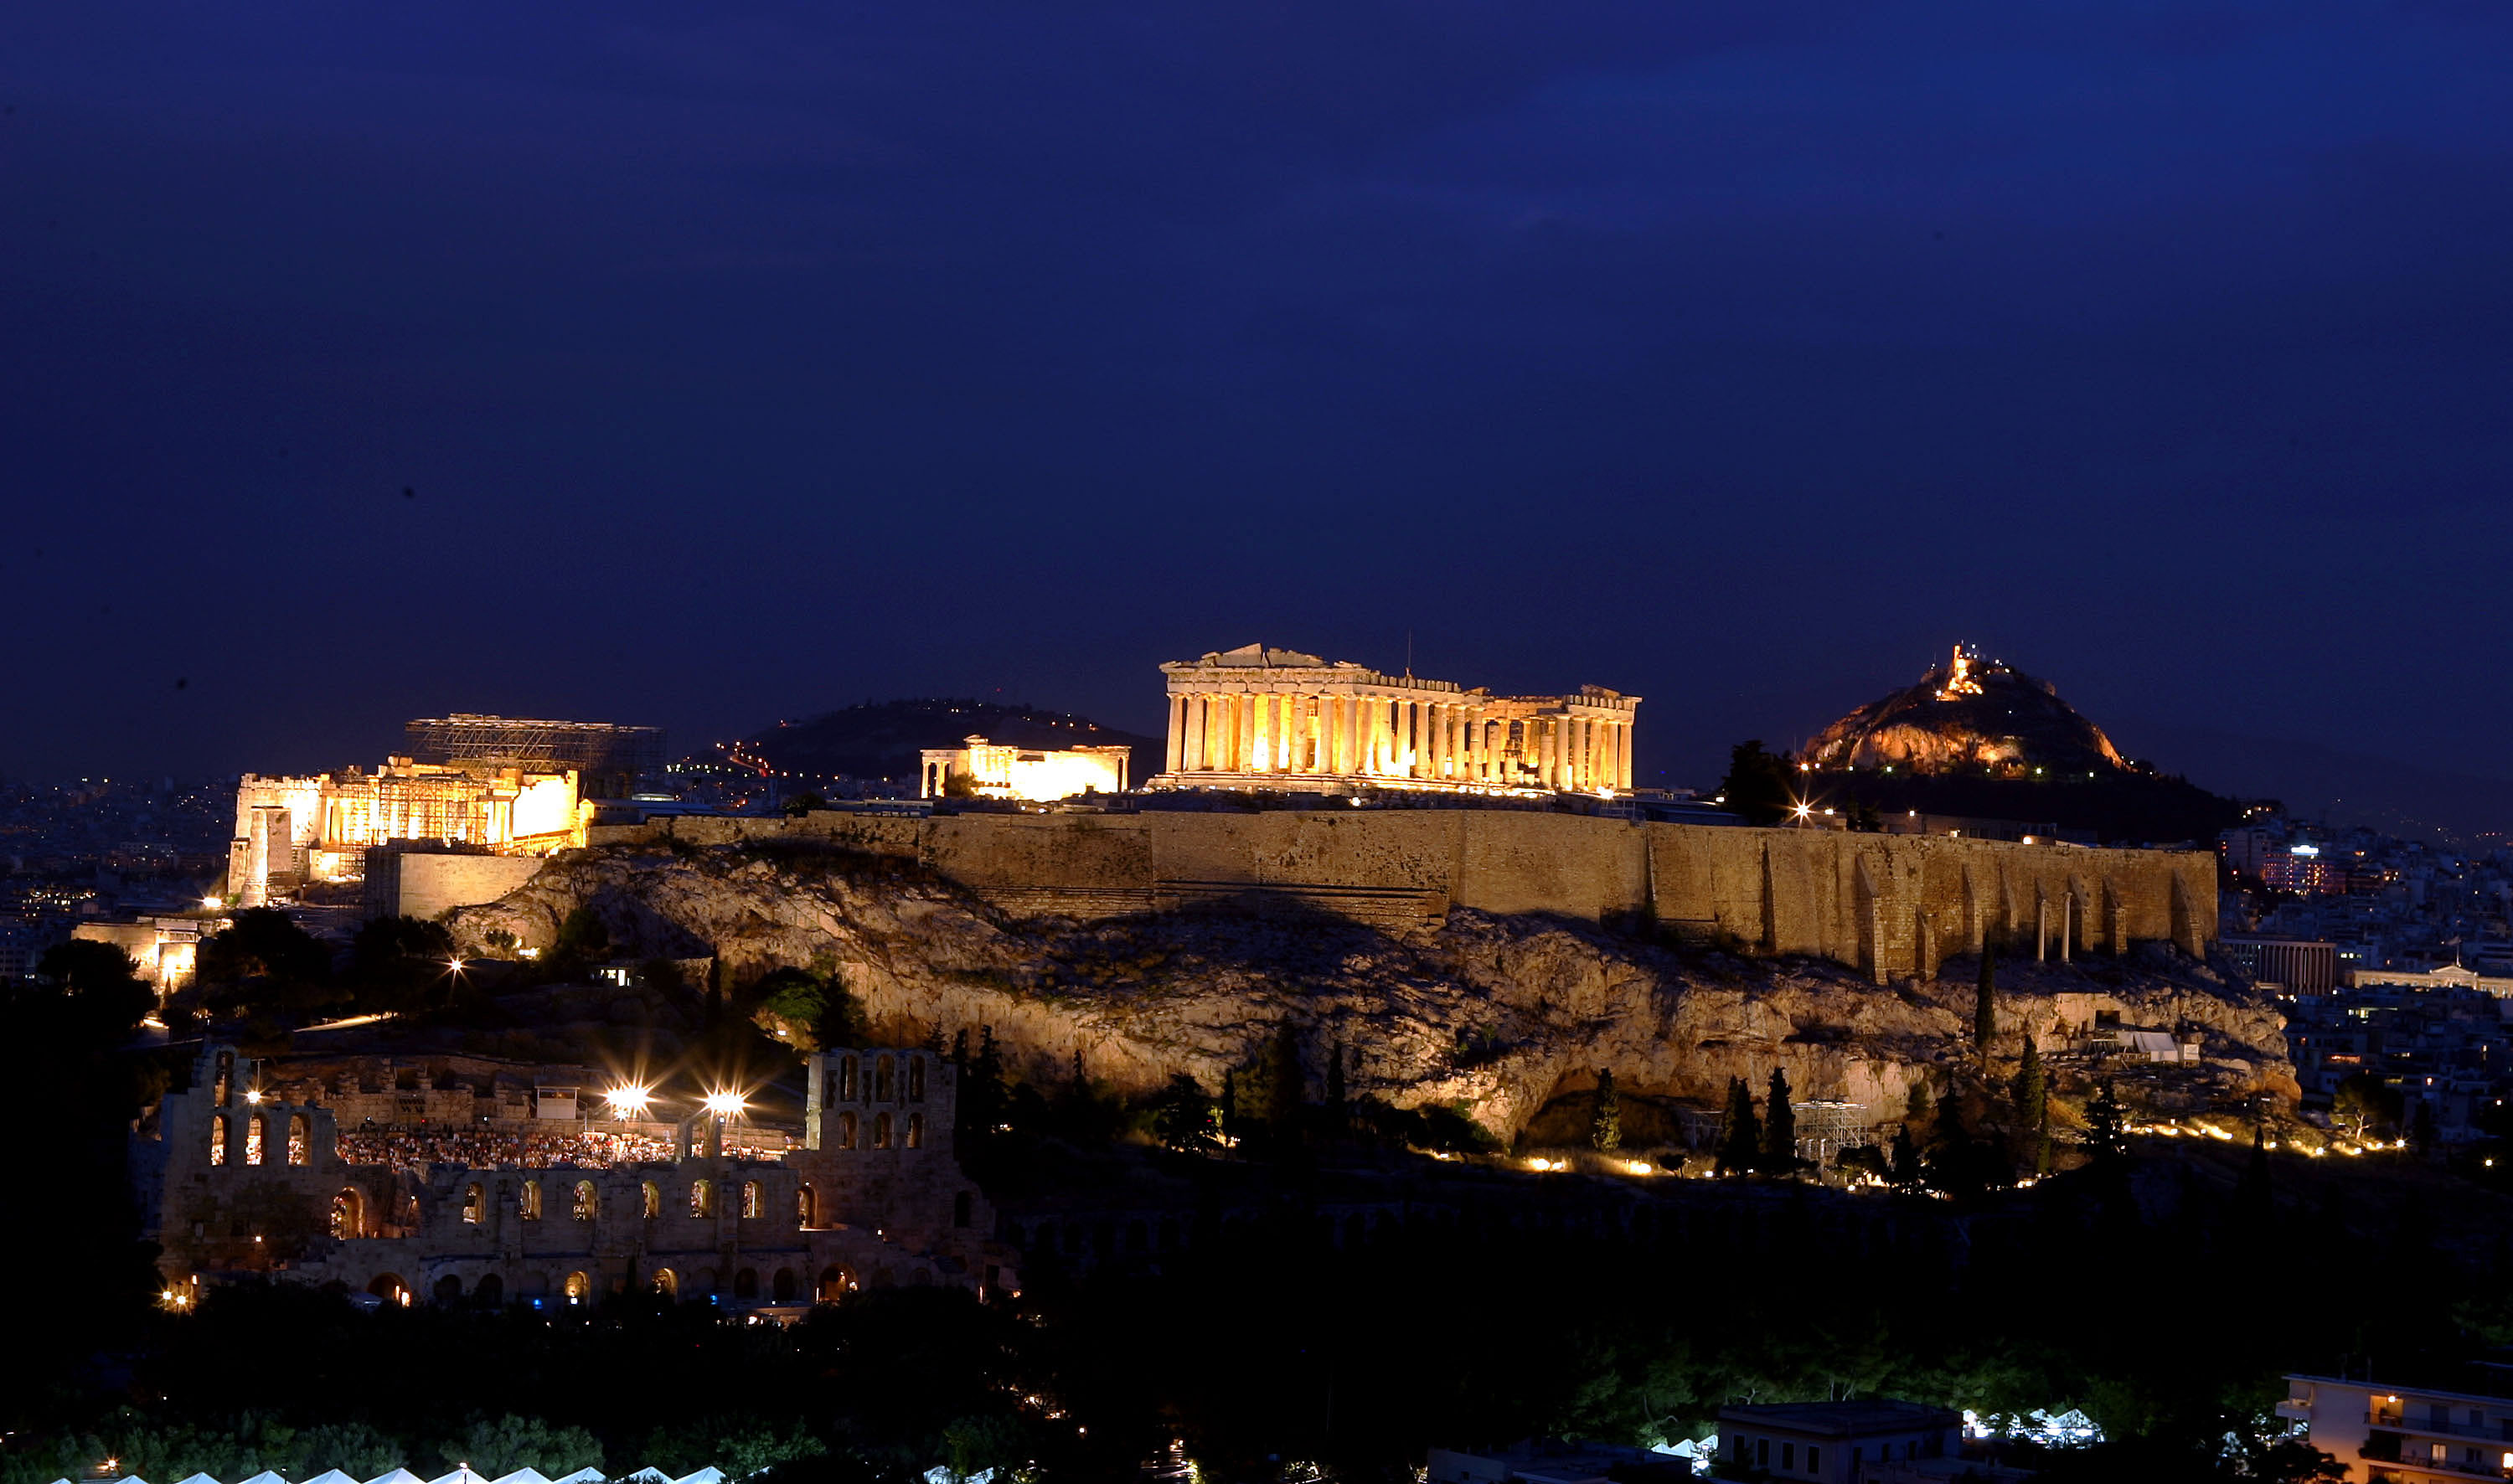 Lighting of the Acropolis of Athens and Lycabettus Hill